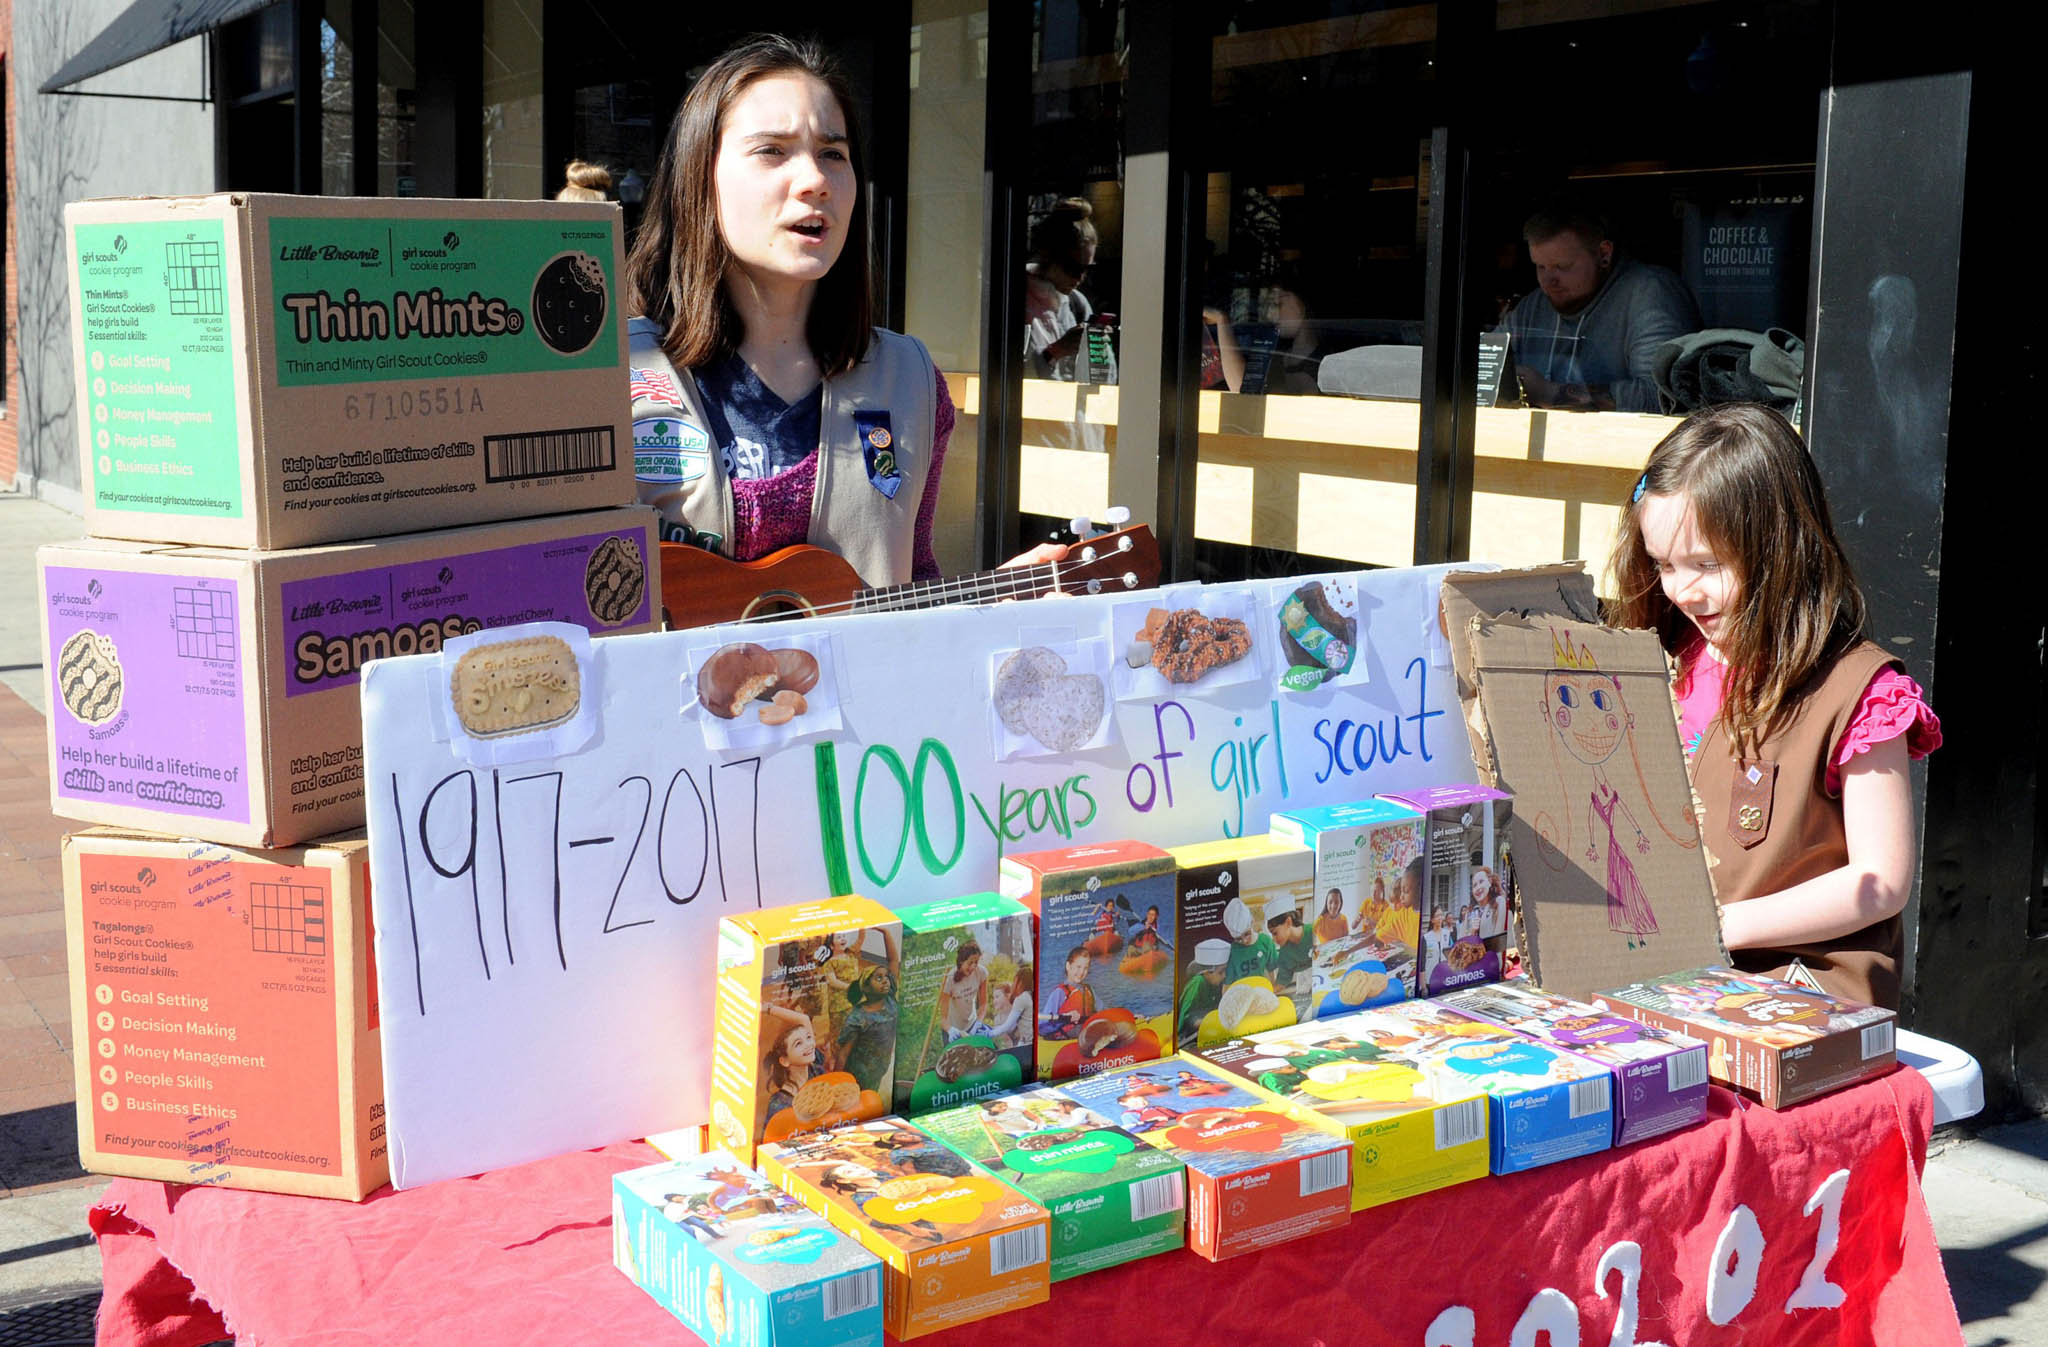 Girl Scouts get creative with their marketing techniques. Molly Sheridan, 13, plays a ukulele to attract customers to her cookie stand in Chicago in 2017. (© Nova Safo/AFP/Getty Images)